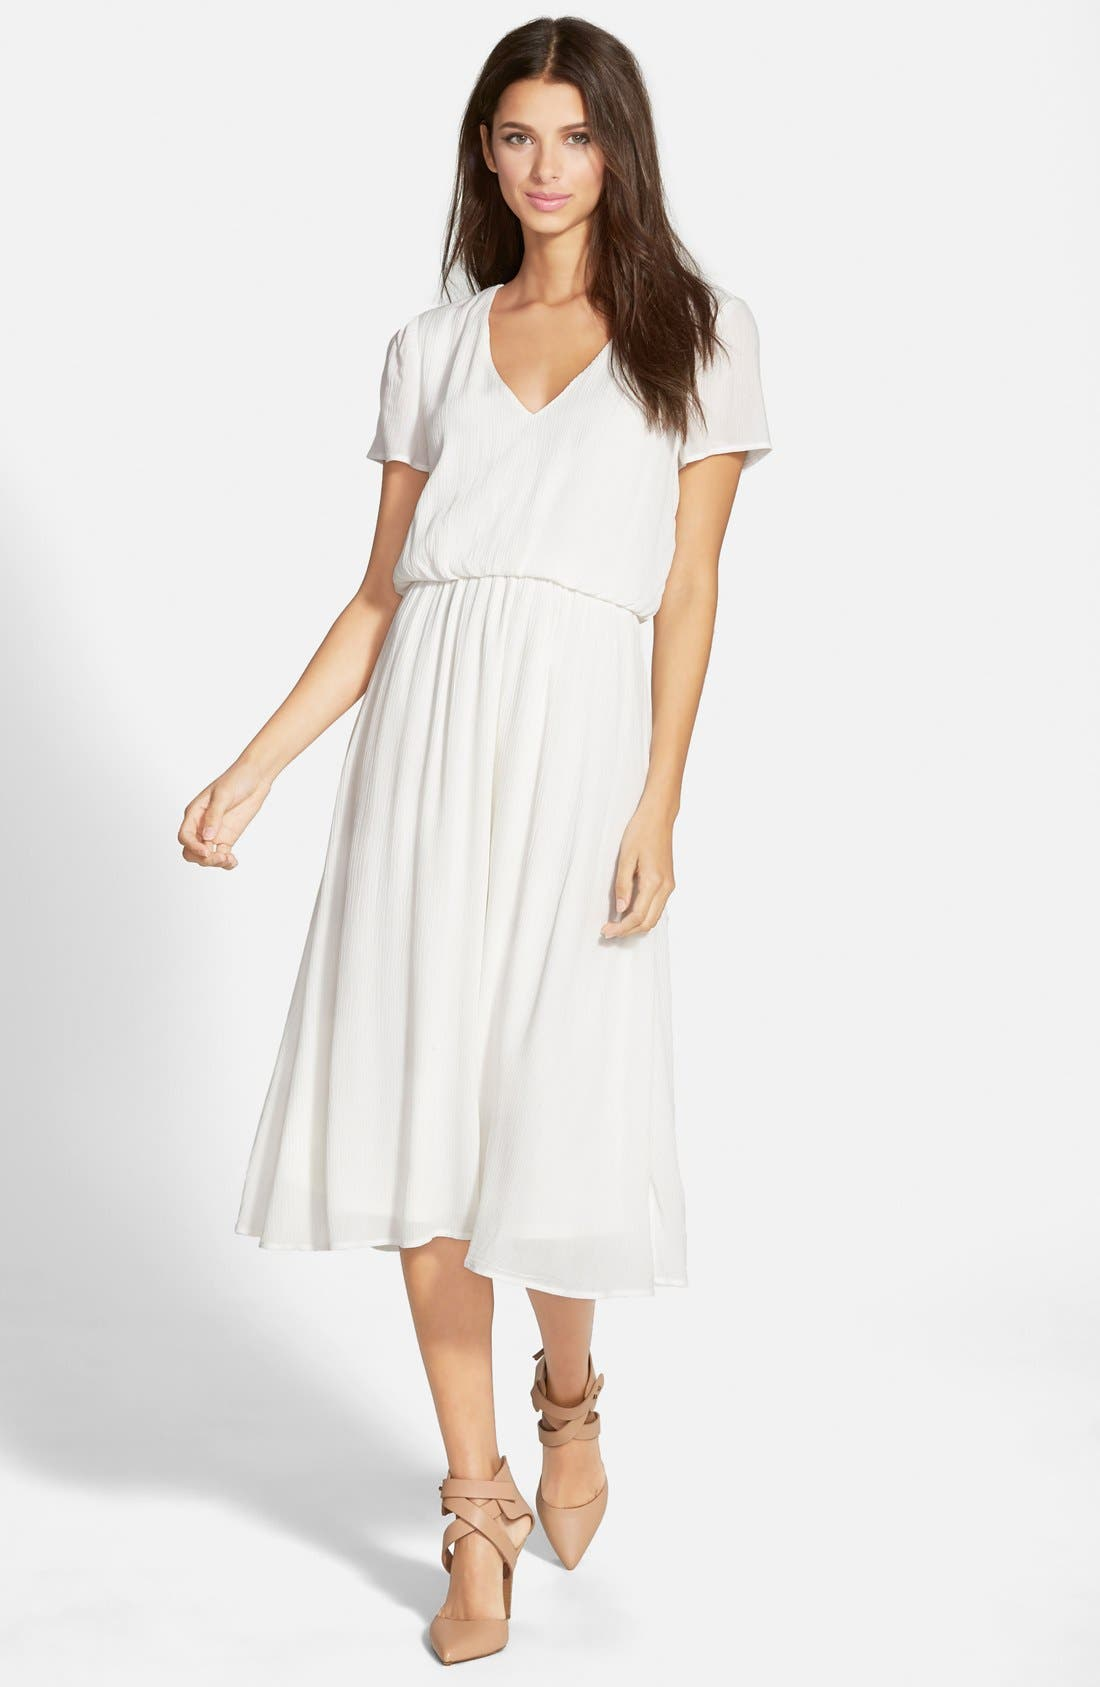 Midi Casual Dresses: Sweater, Jersey, Boatneck & More | Nordstrom